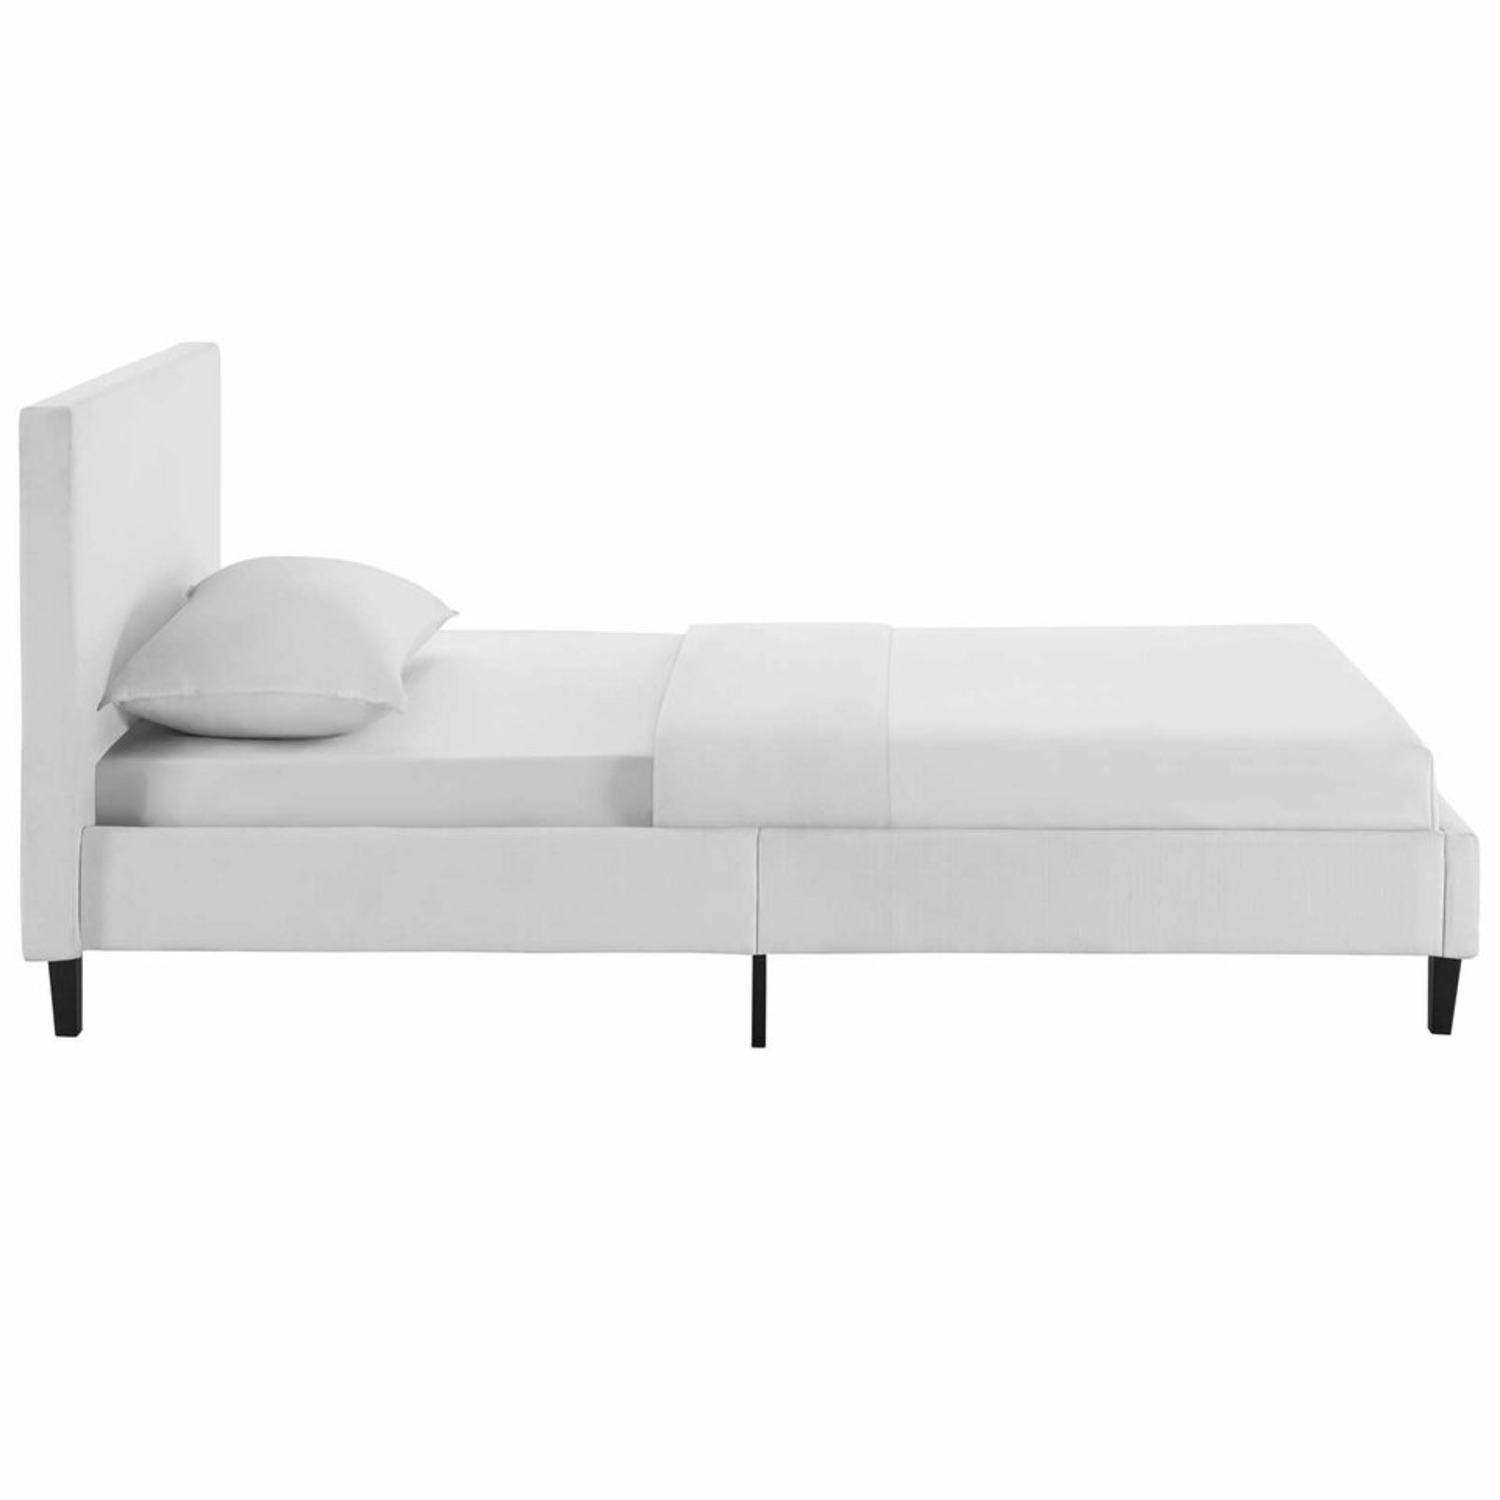 Twin Bed In White Fabric Upholstery Finish - image-2